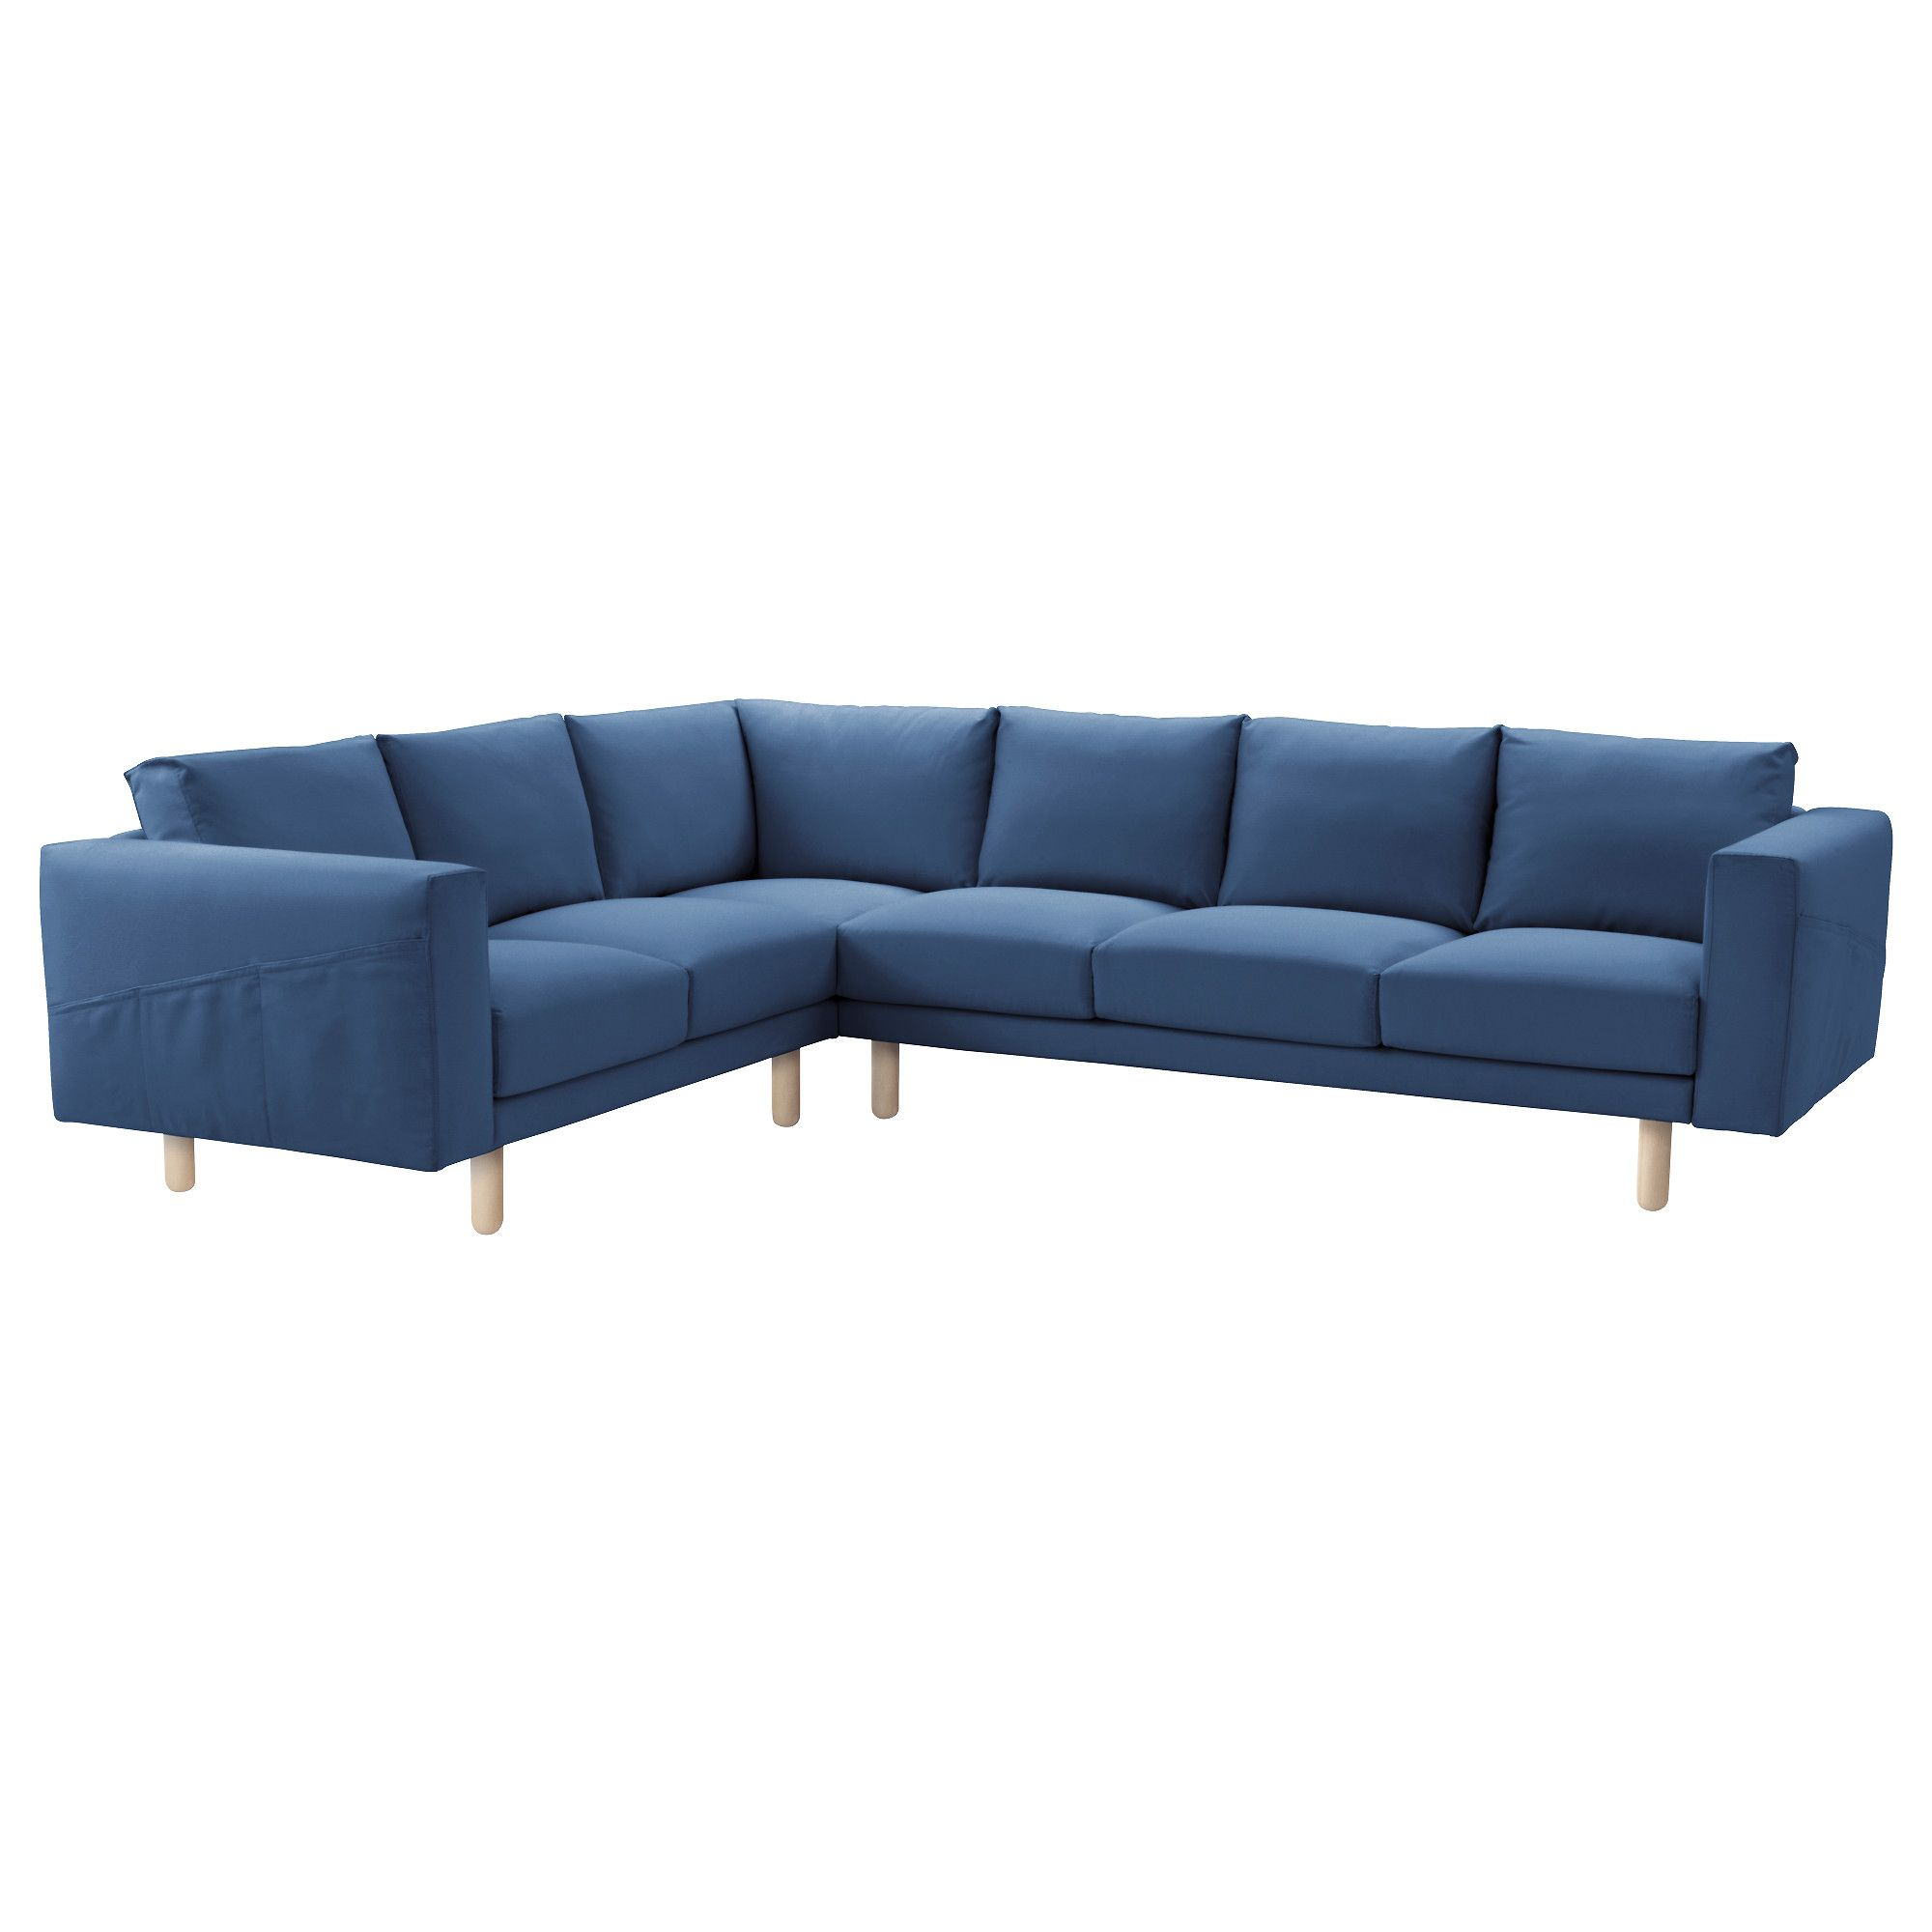 Ikea Us Furniture And Home Furnishings Corner Sofa Norsborg Corner Sofa And Rug